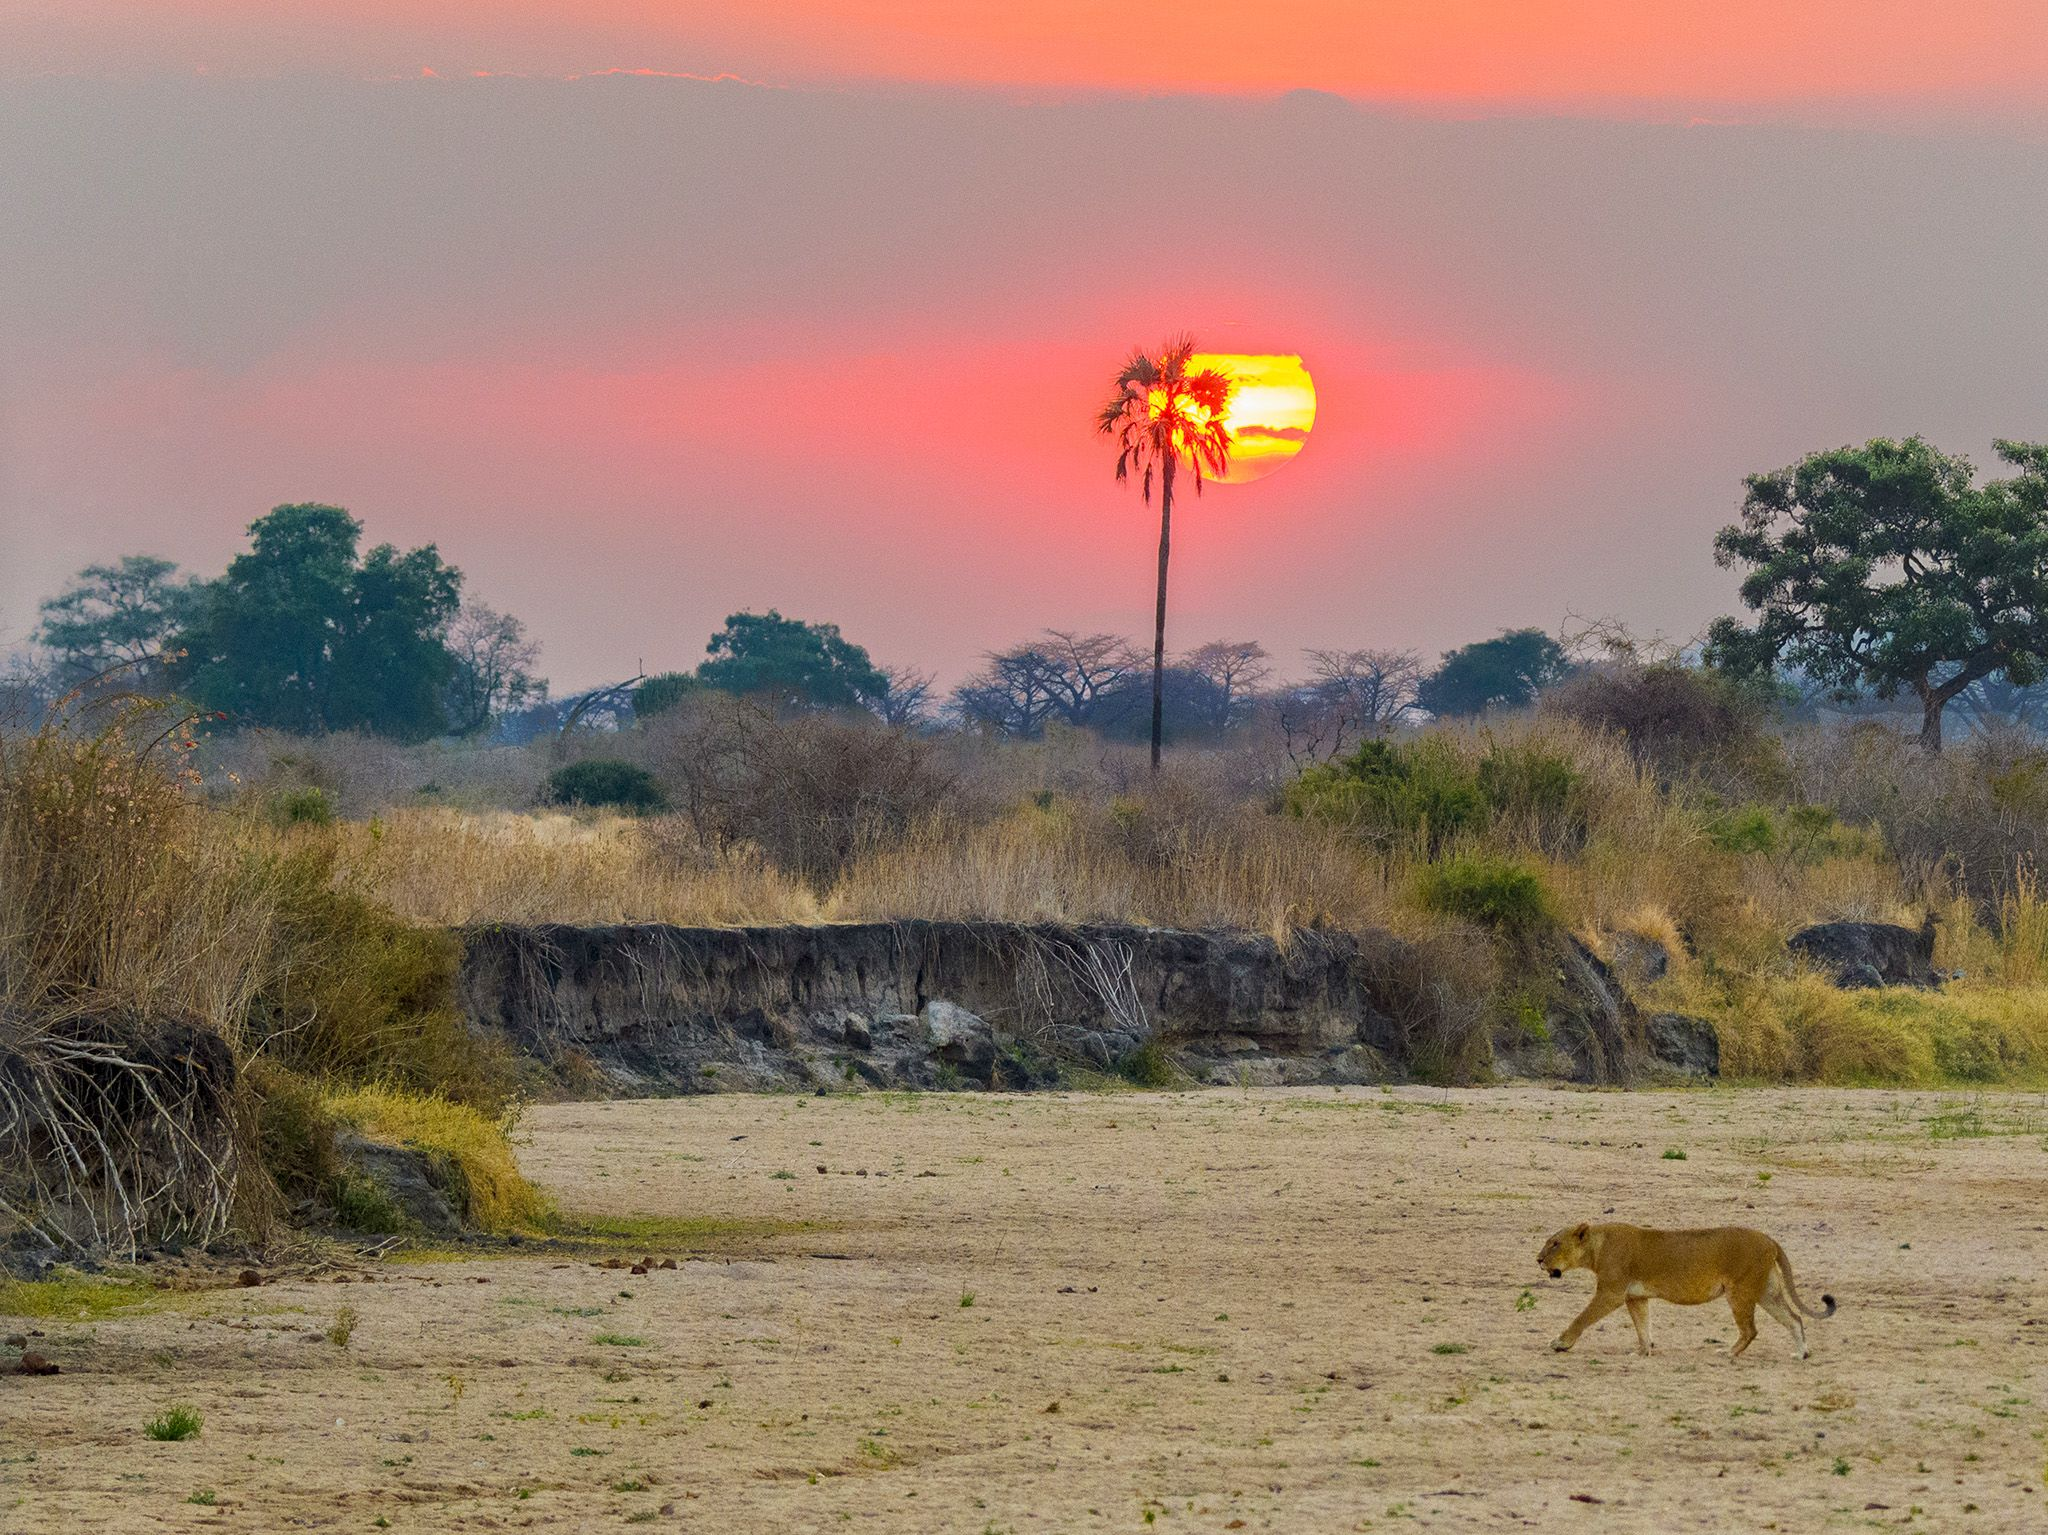 Ruaha National Park, Tanzania:  Glade lioness at sunset.  This image is from Lion Kingdom. [Foto del giorno - gennaio 2018]